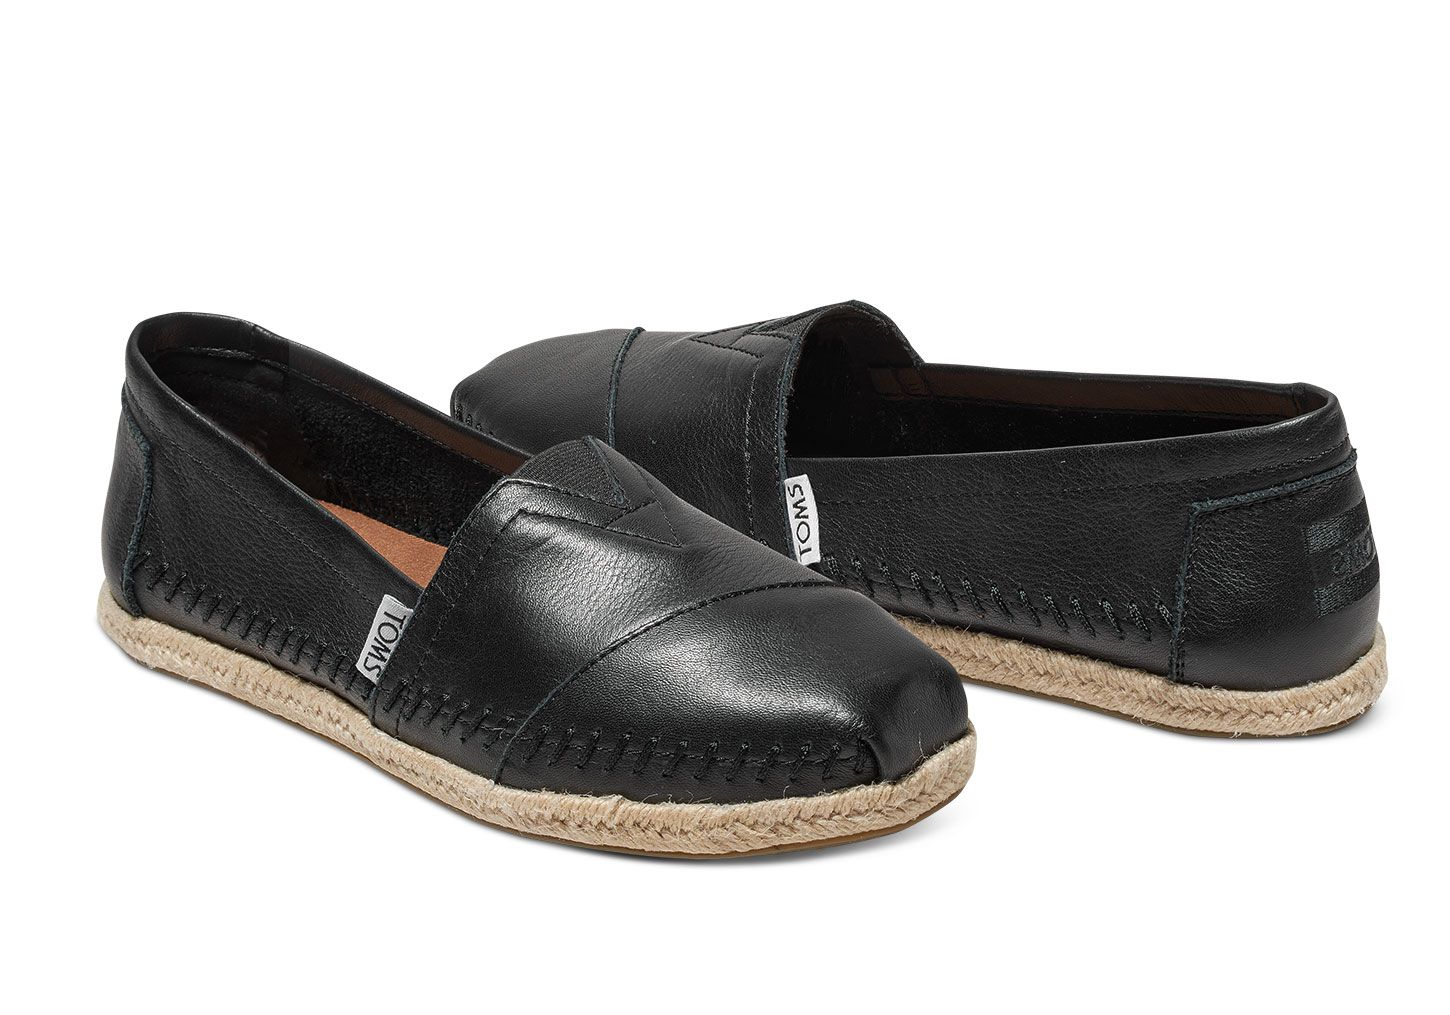 461b673c43d Leather adds an element of sophistication to these Classics. Featuring a  rope sole and more cushioning in the footbed